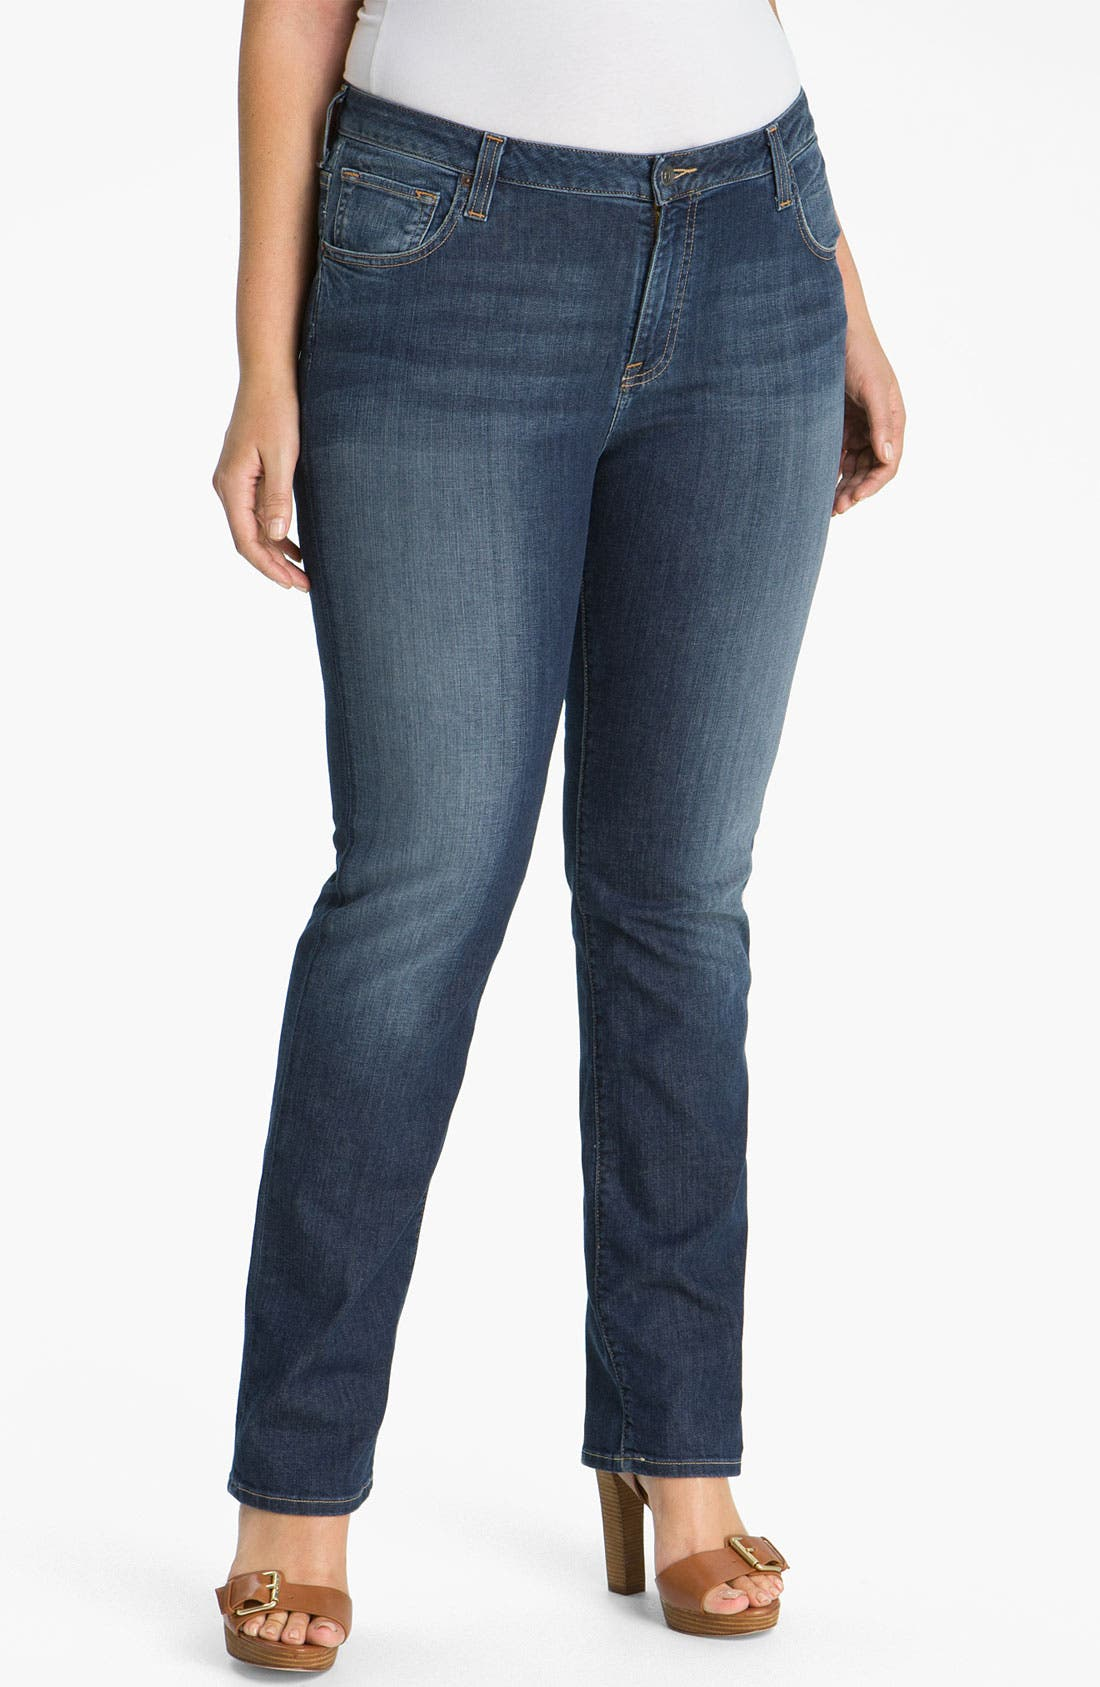 Alternate Image 1 Selected - Lucky Brand 'Ginger' Straight Leg Jeans (Plus Size)